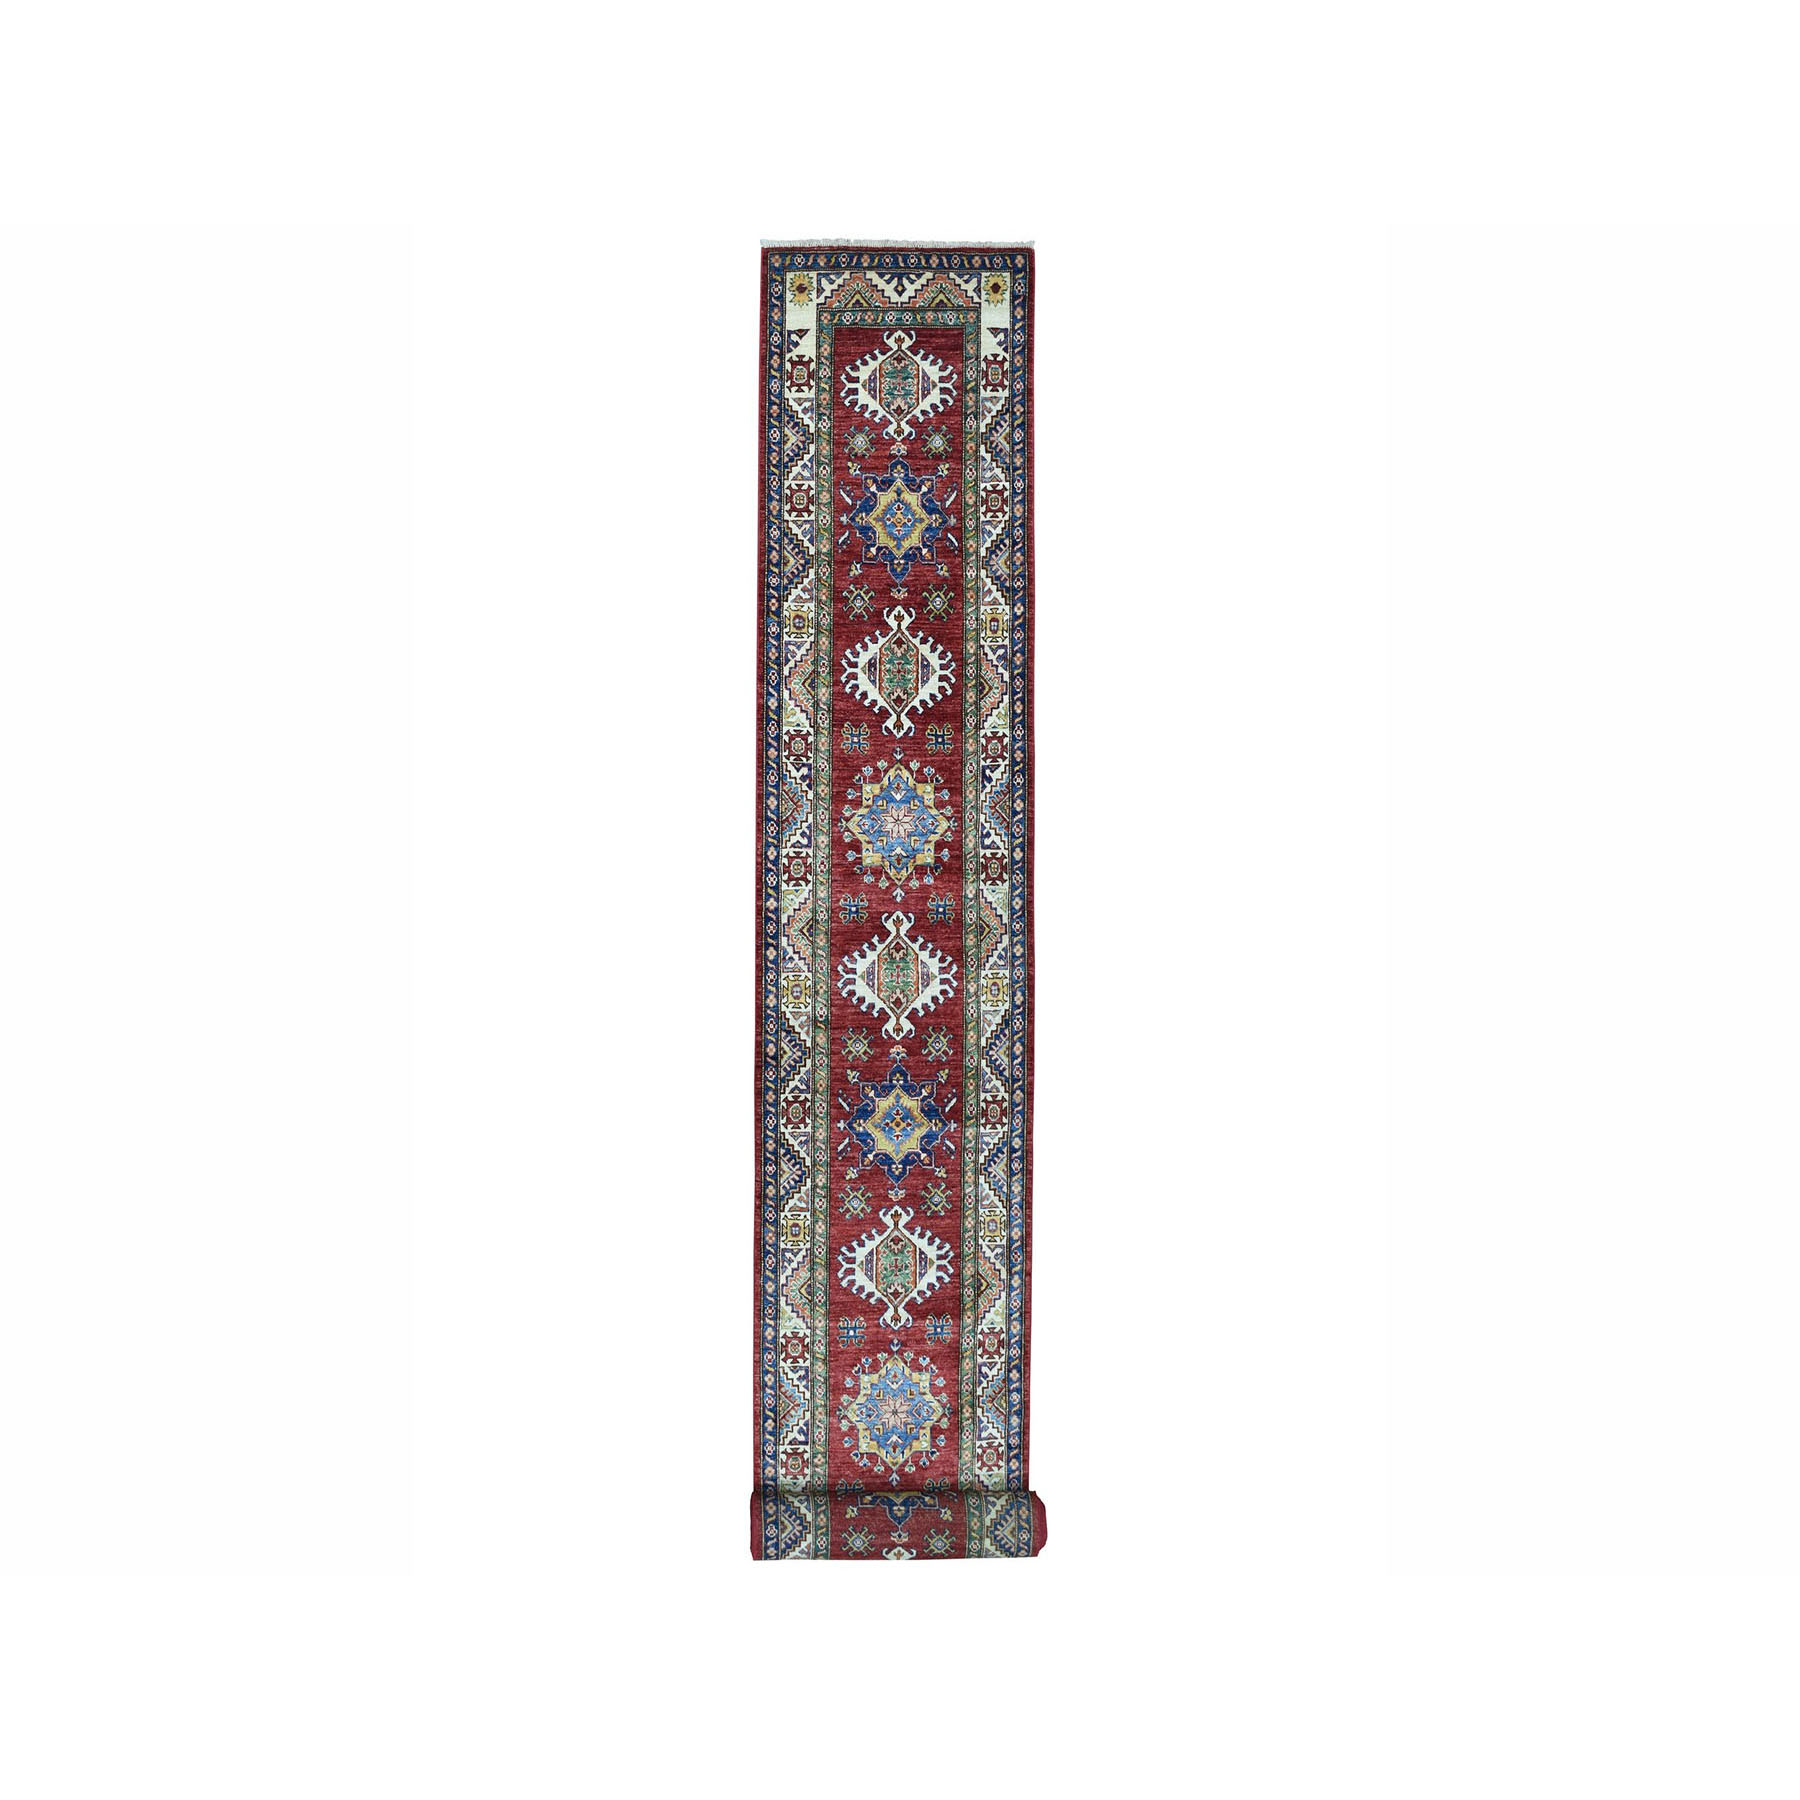 "2'8""x19'3"" Super Kazak Red Geometric Design Pure Wool Hand Woven XL Runner Oriental Rug"